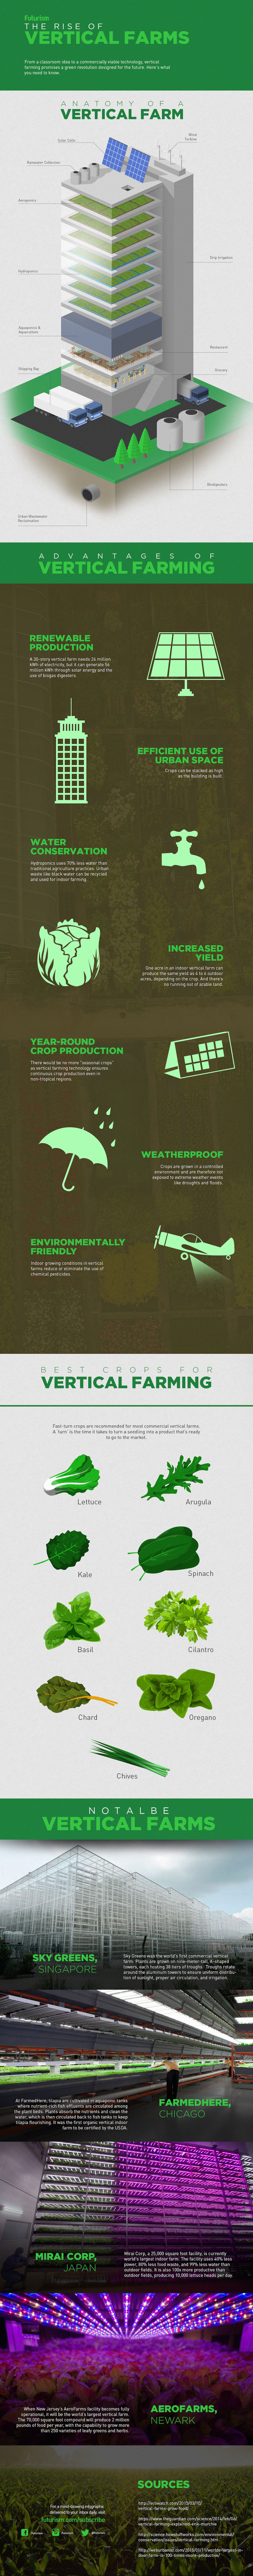 vertical farm infographic